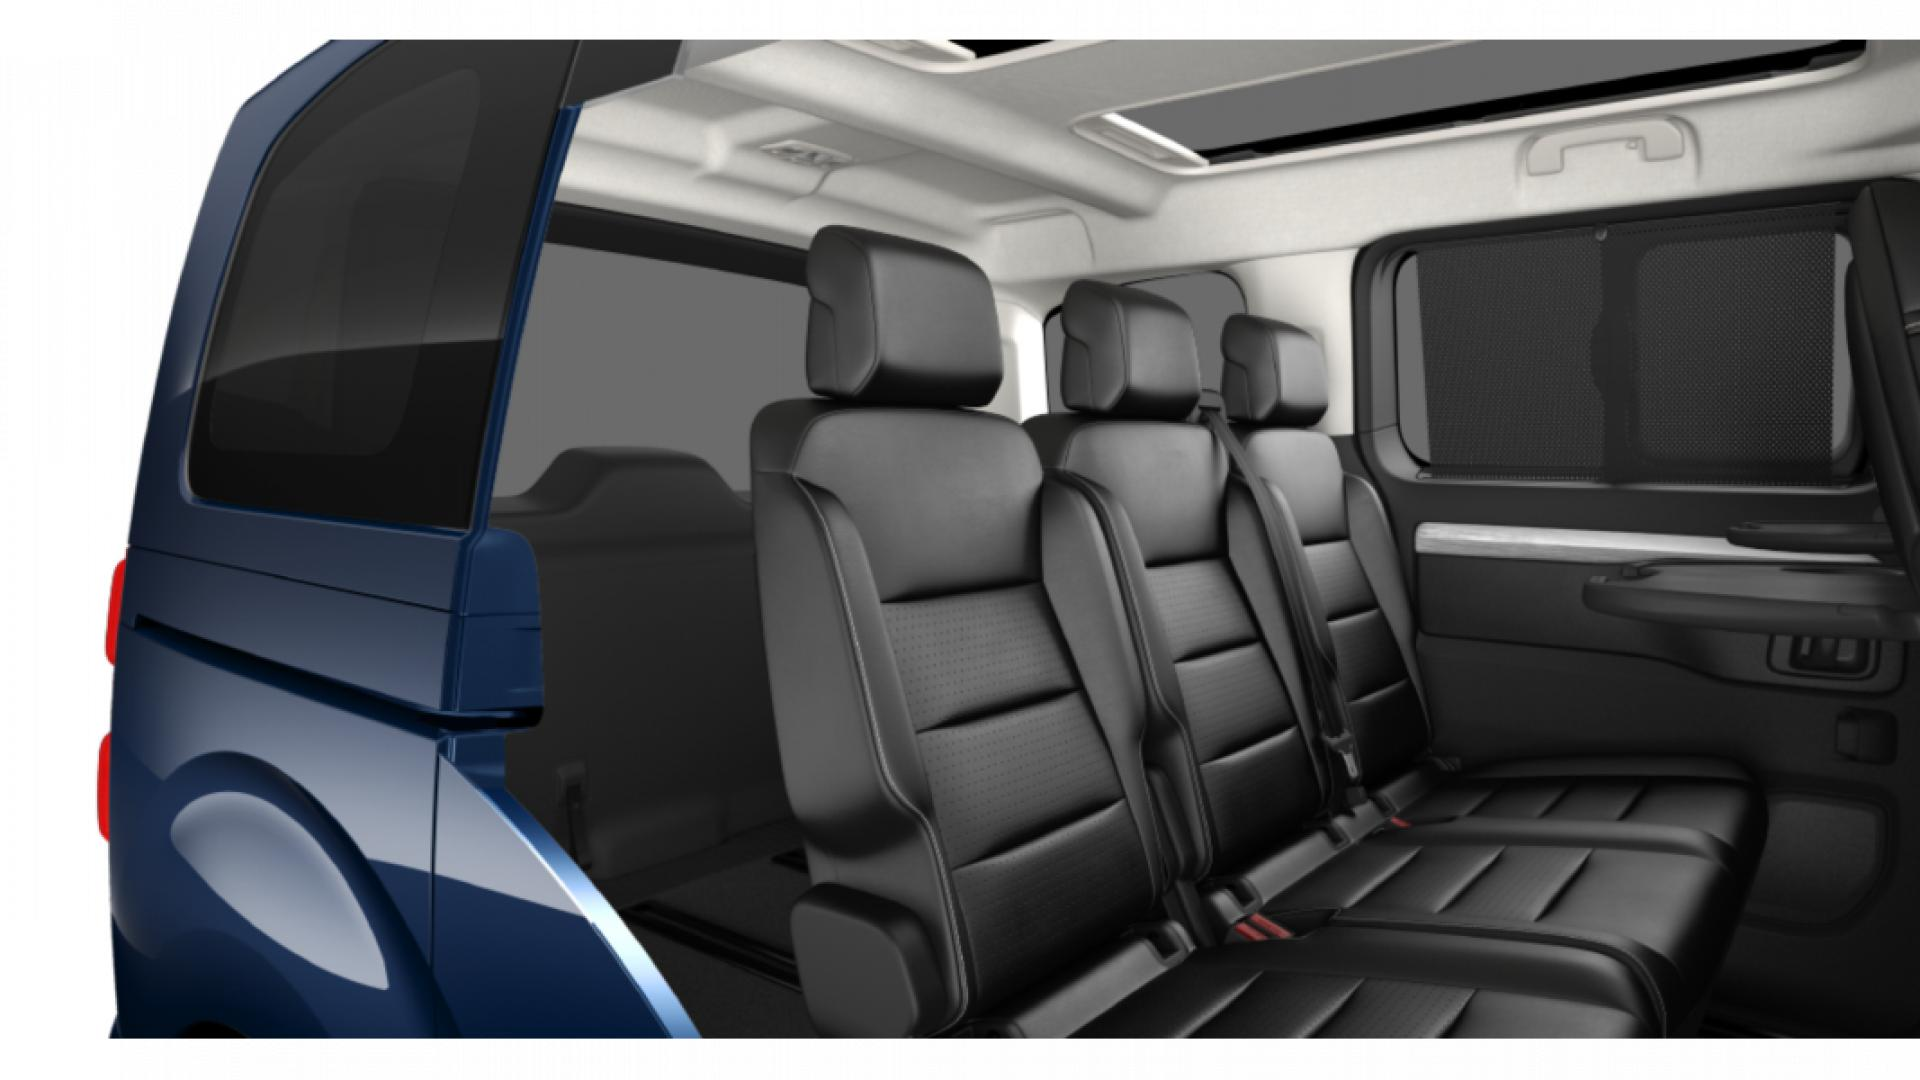 motability peugeot traveller sw 2 0 bluehdi 150 allure compact 8 seat 5dr robins and day. Black Bedroom Furniture Sets. Home Design Ideas